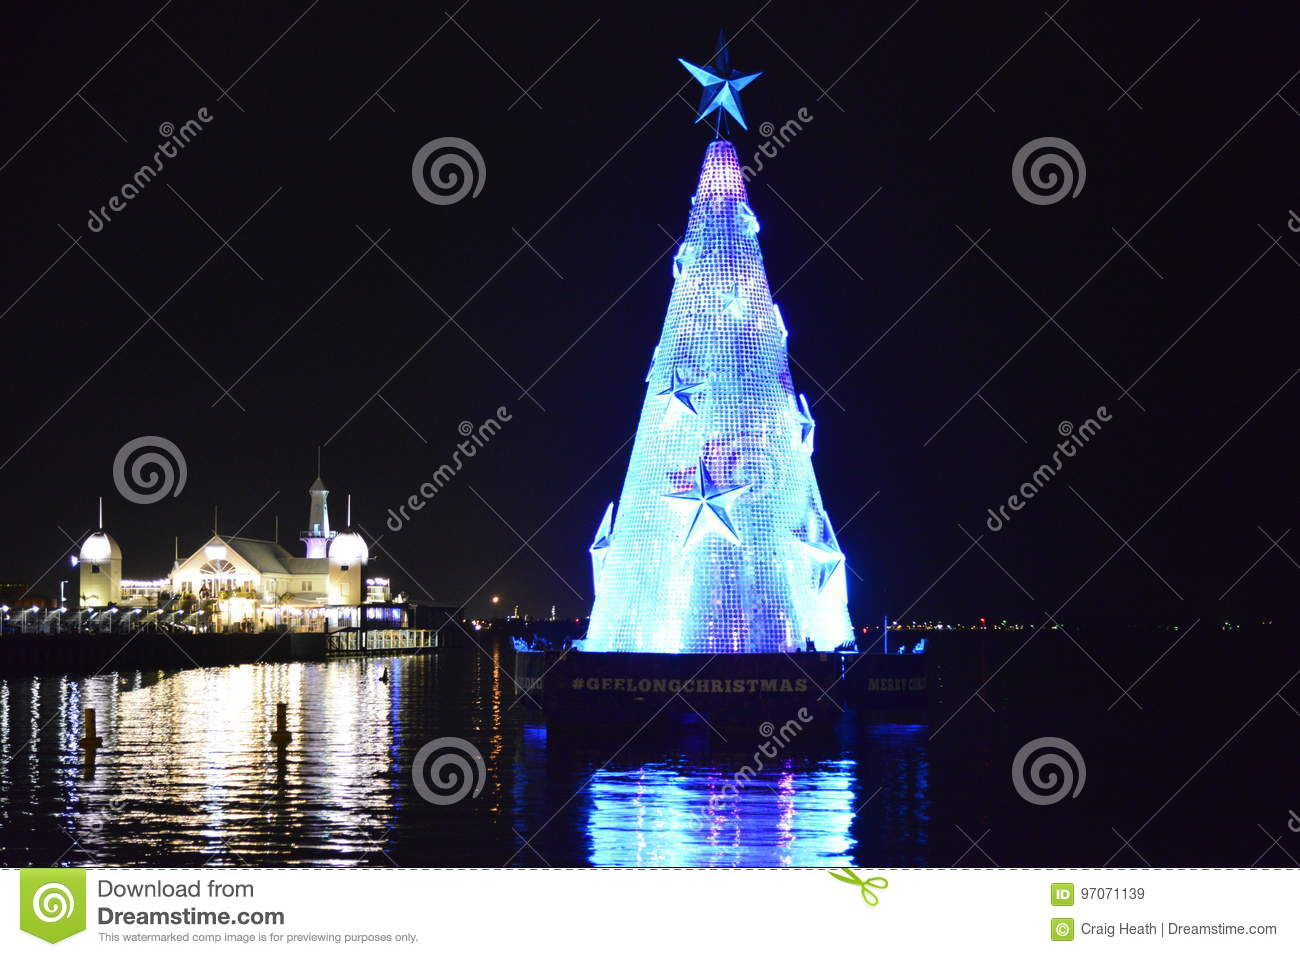 Christmas Tree At Xmas Time Geelong Editorial Stock Image - Image of ...